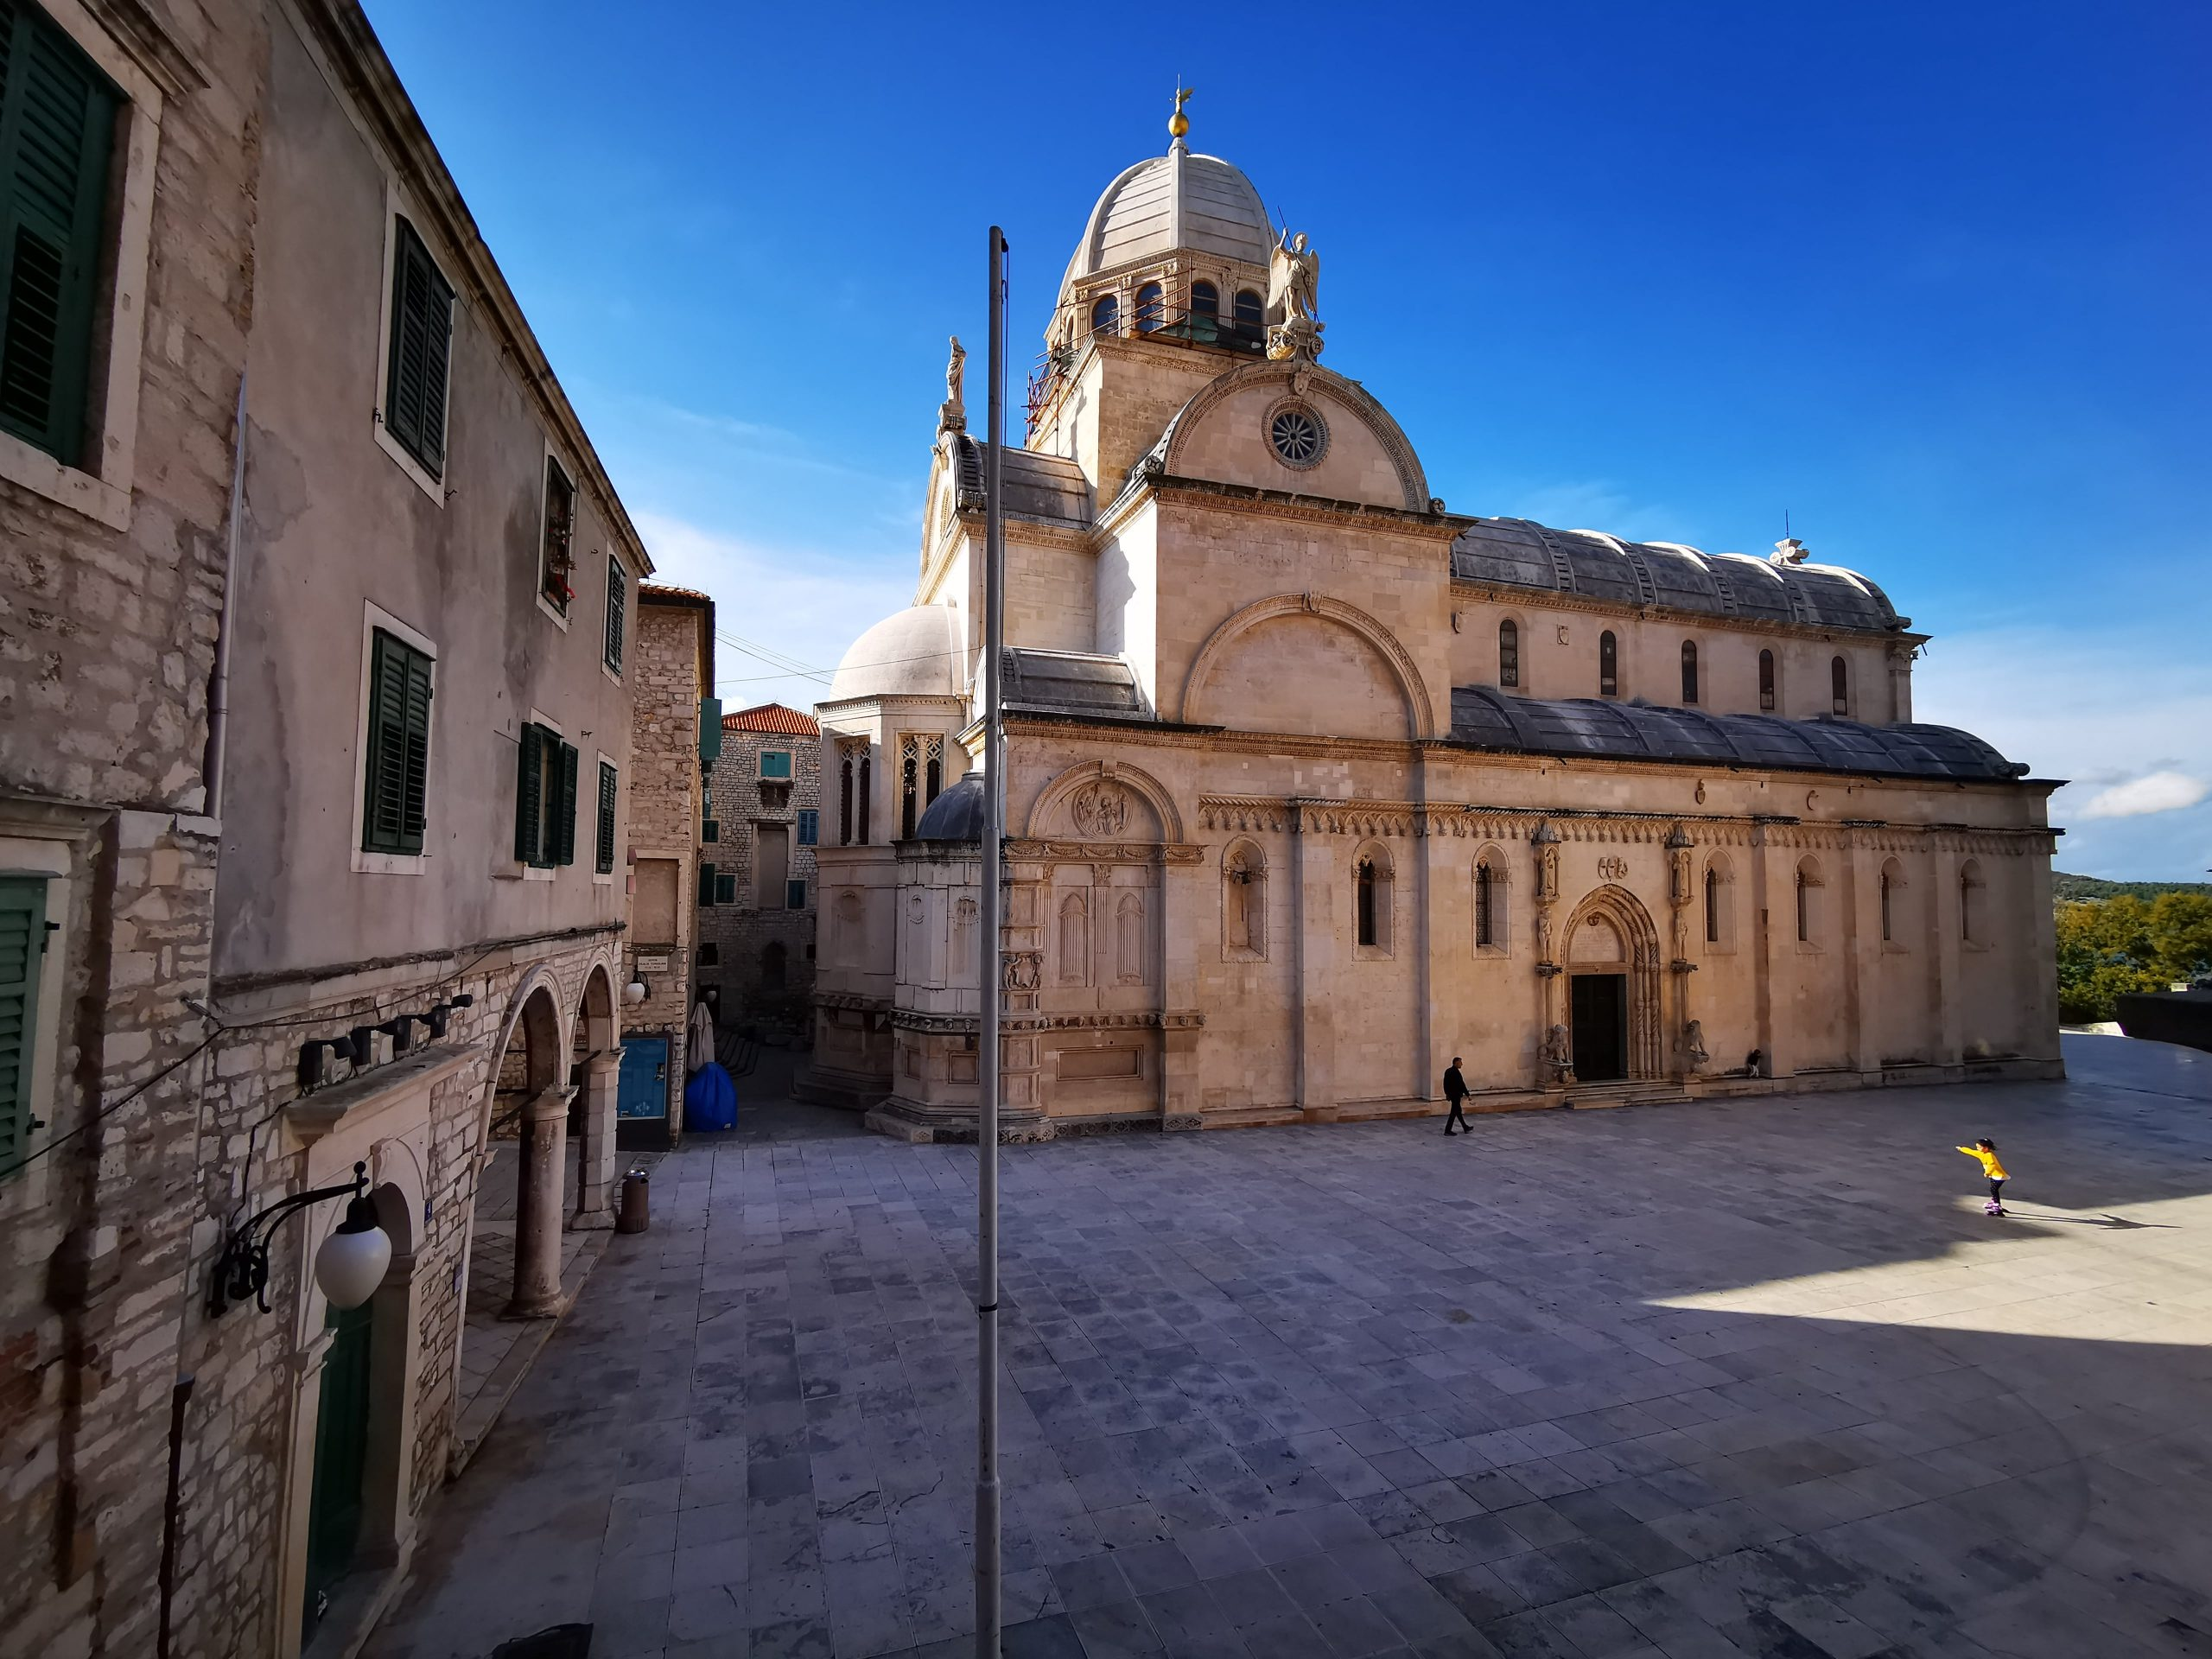 Cathedral Saint Jacobs in Šibenik